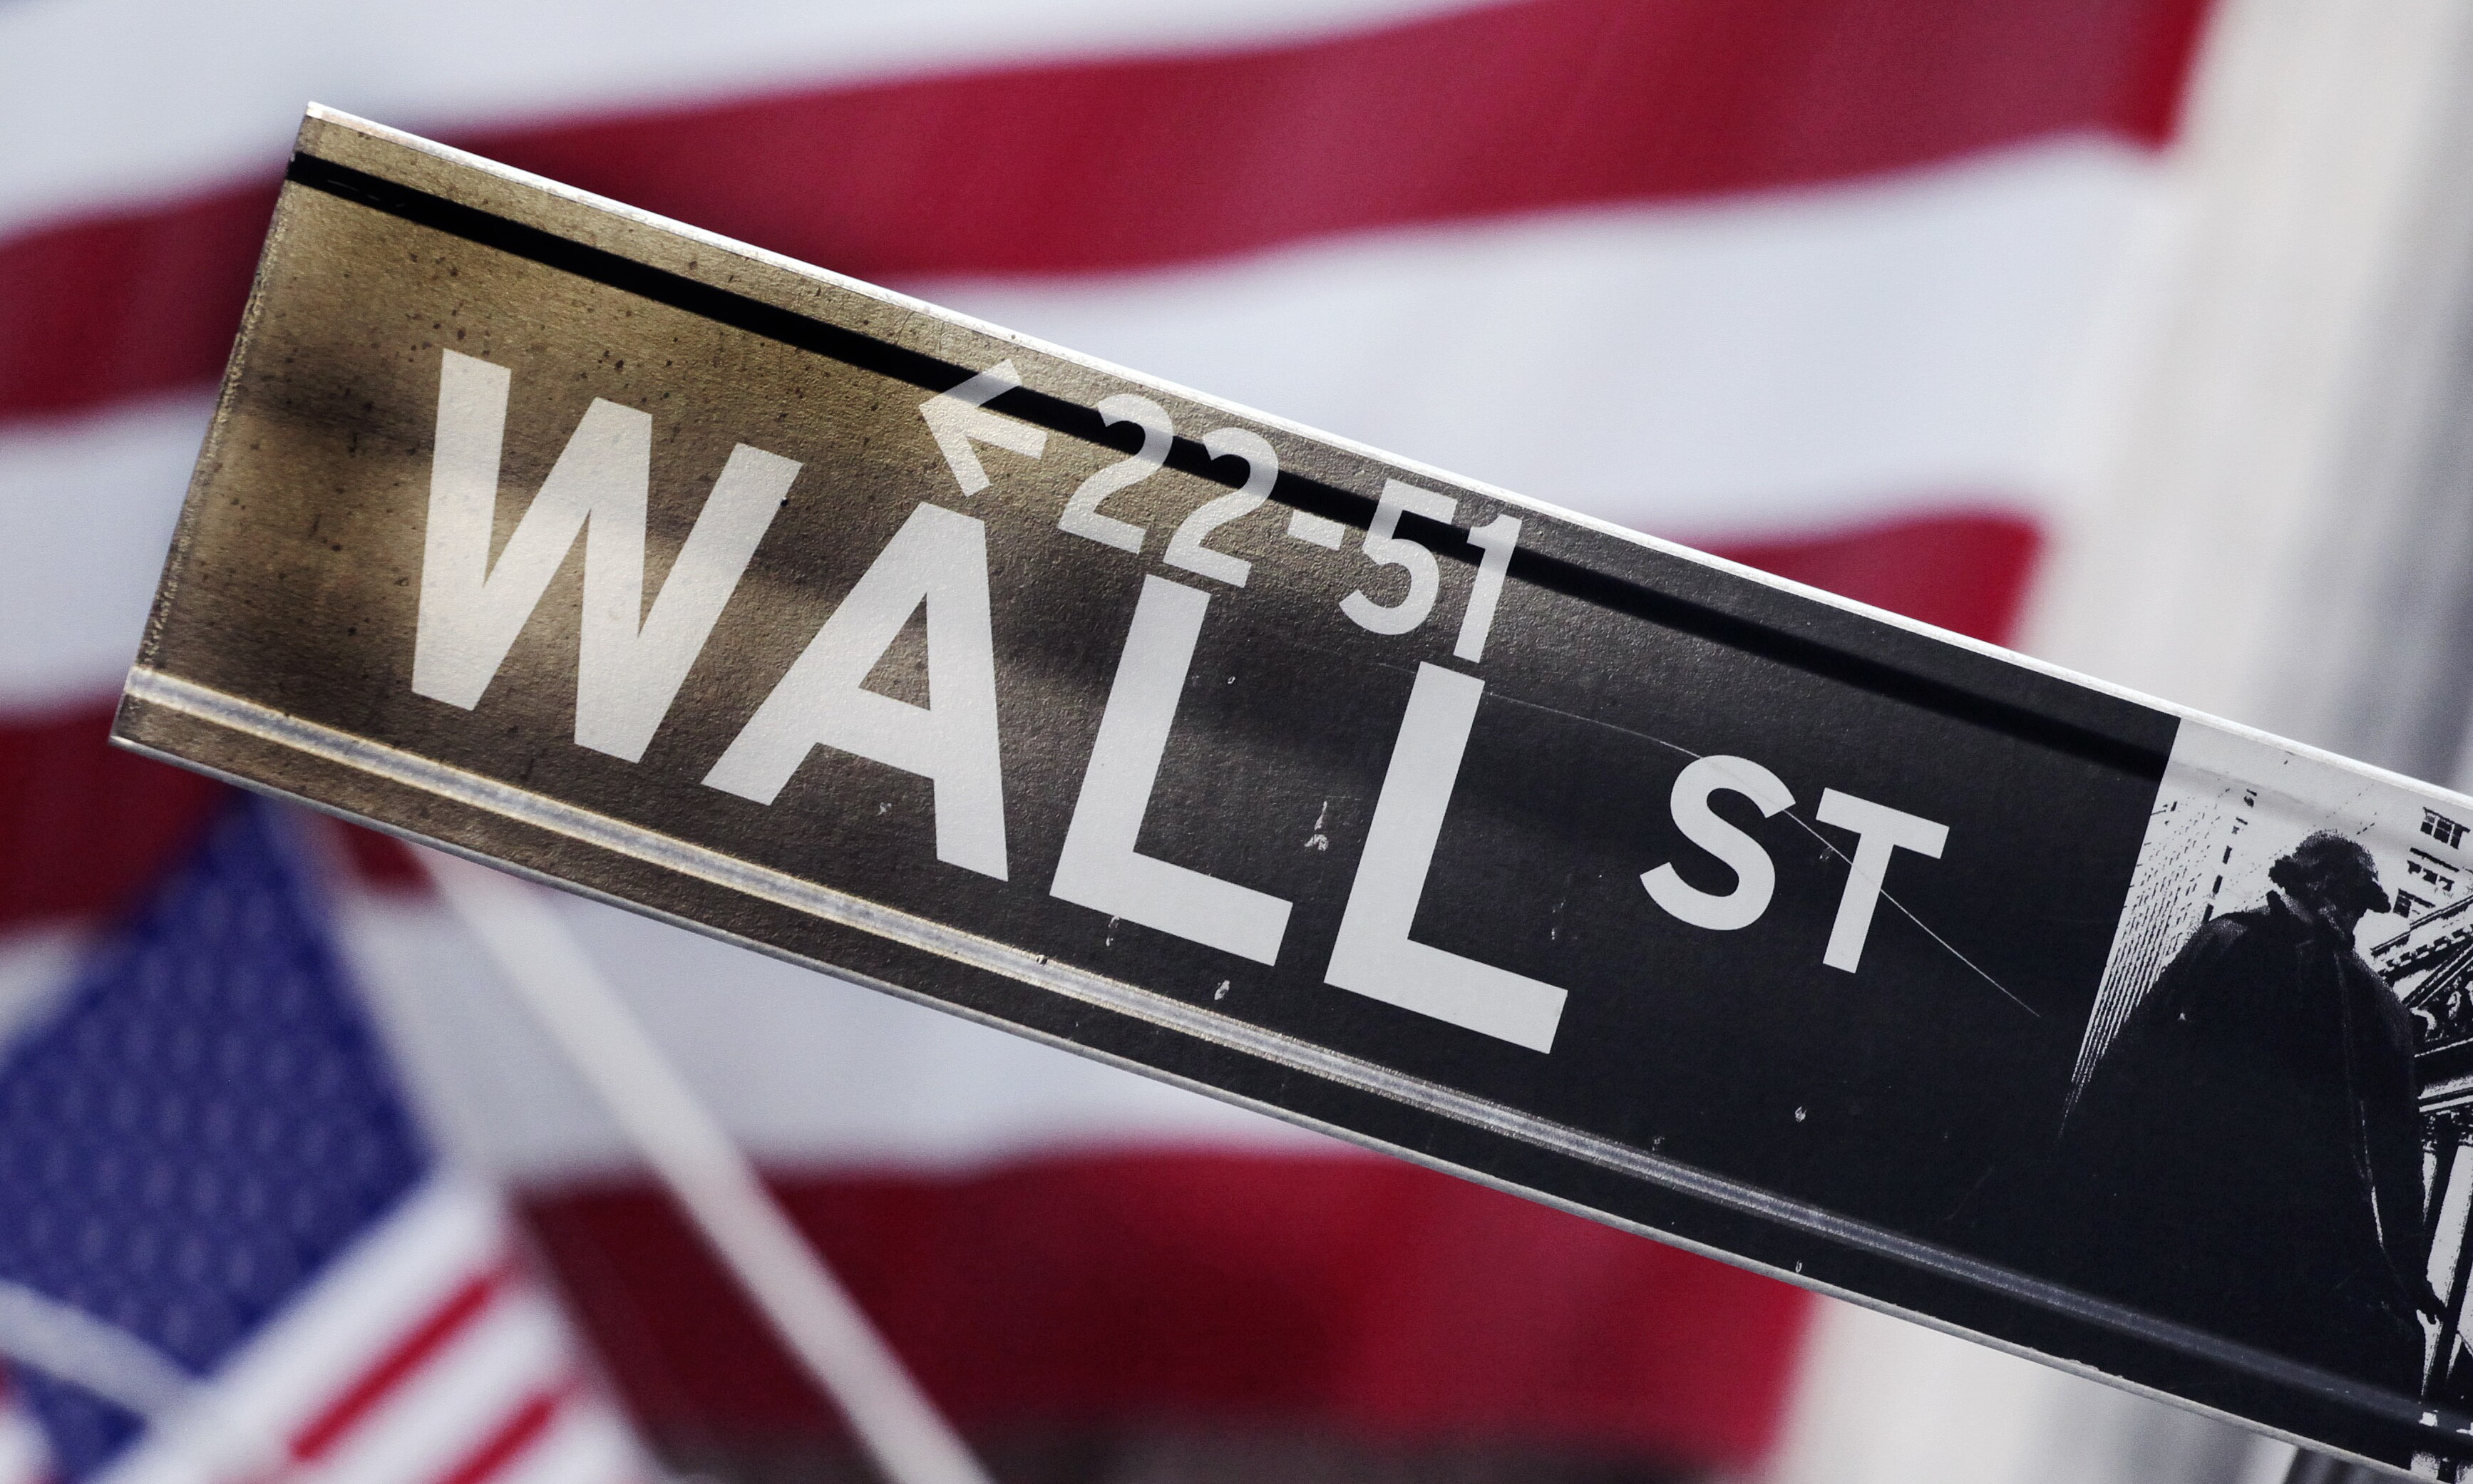 Voters still care a lot about regulating Wall Street